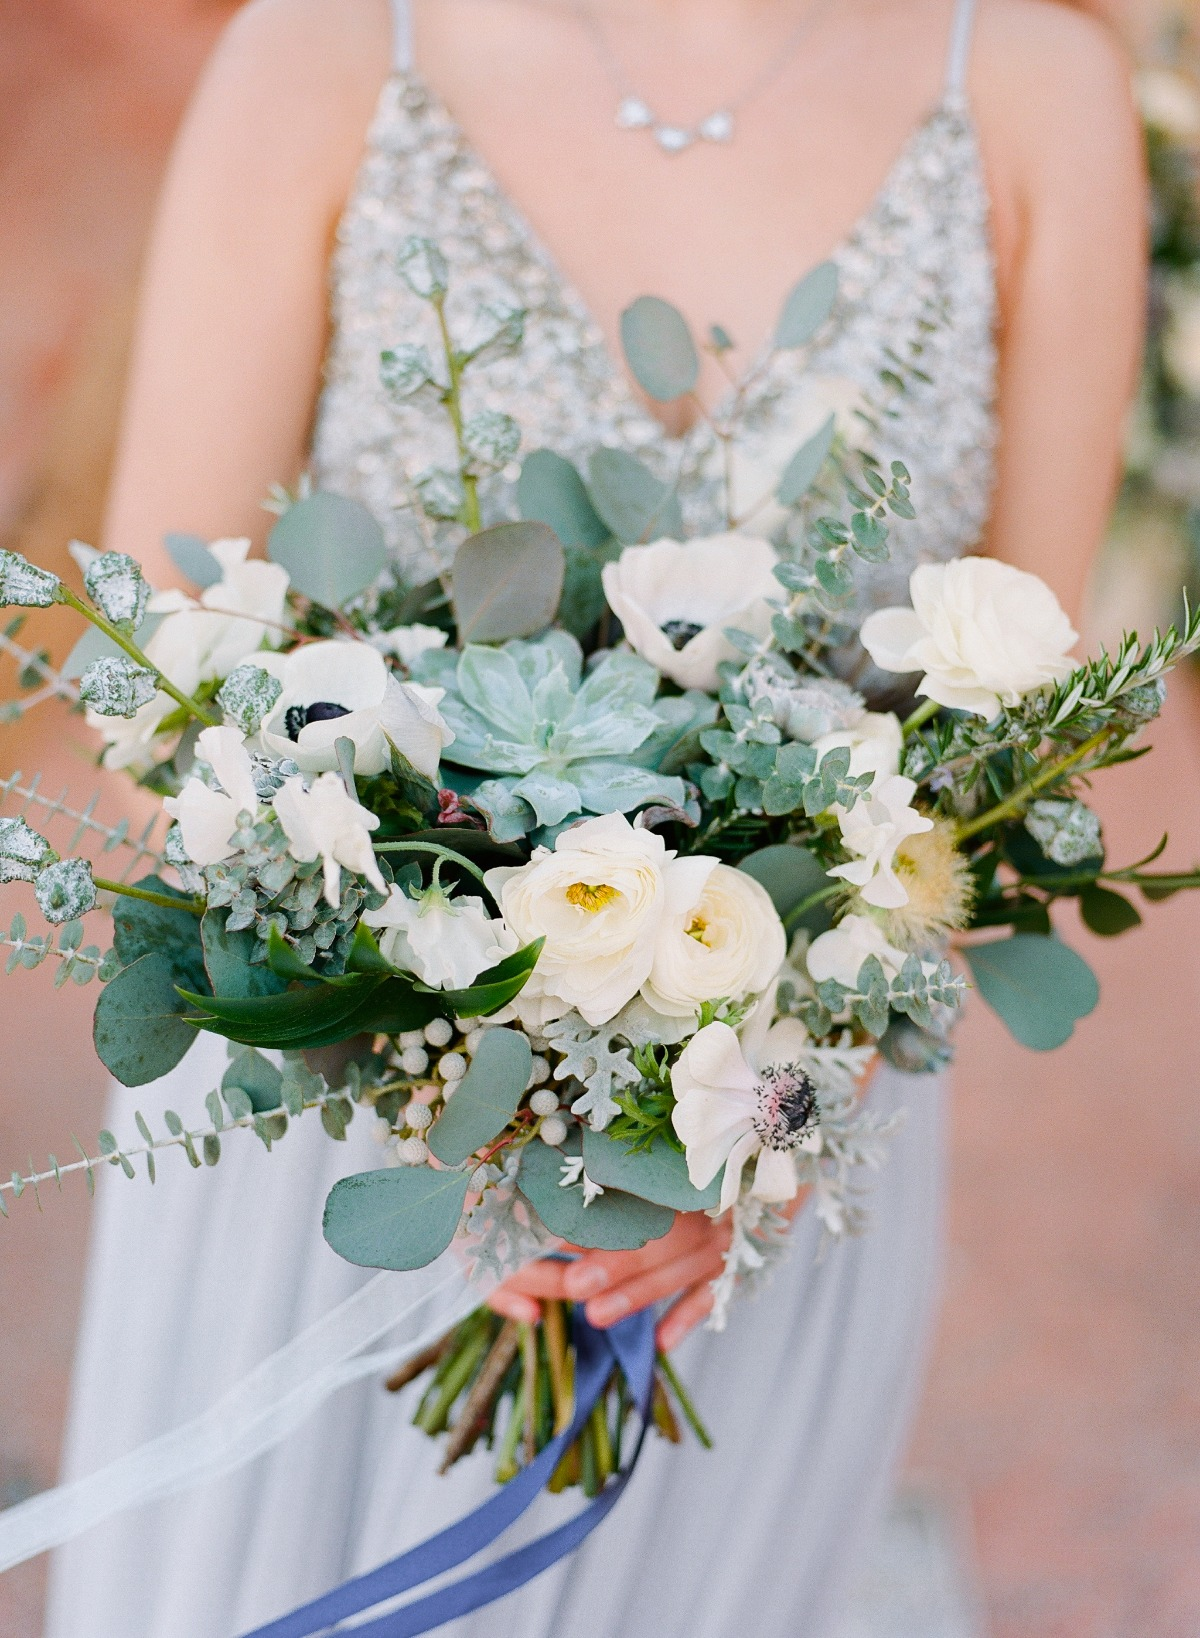 Green and white desert inspired bouquet by Gaia Flowers